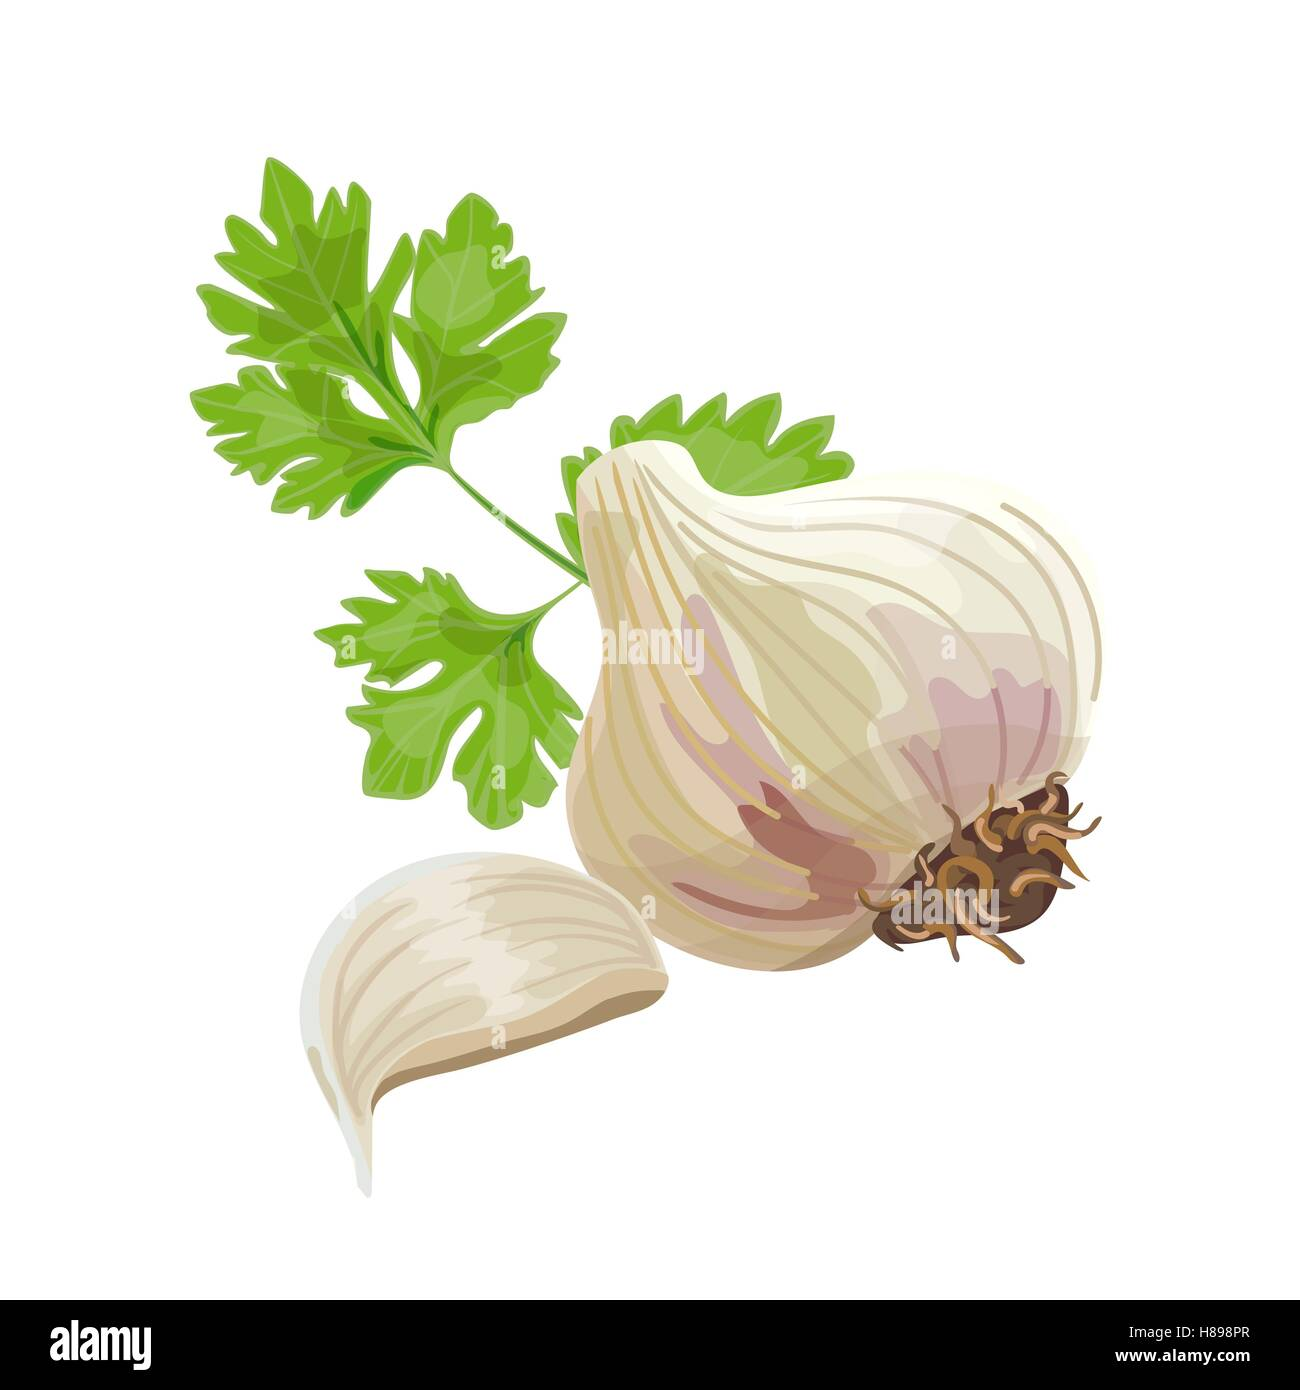 Whole garlic, one clove and parsley leaf isolated on white. Vector illustration. - Stock Vector